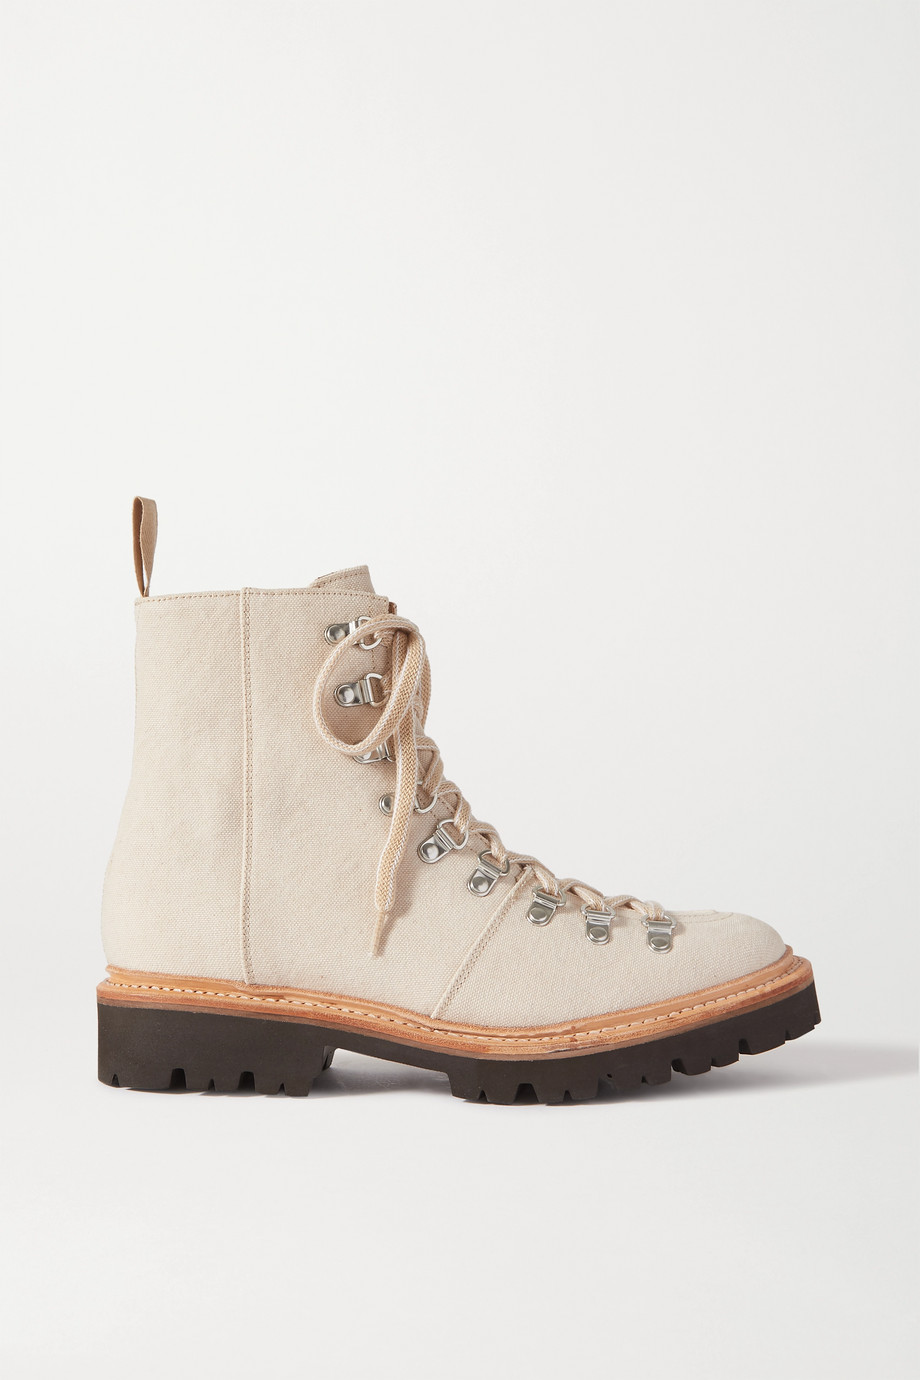 Grenson Nanette canvas ankle boots